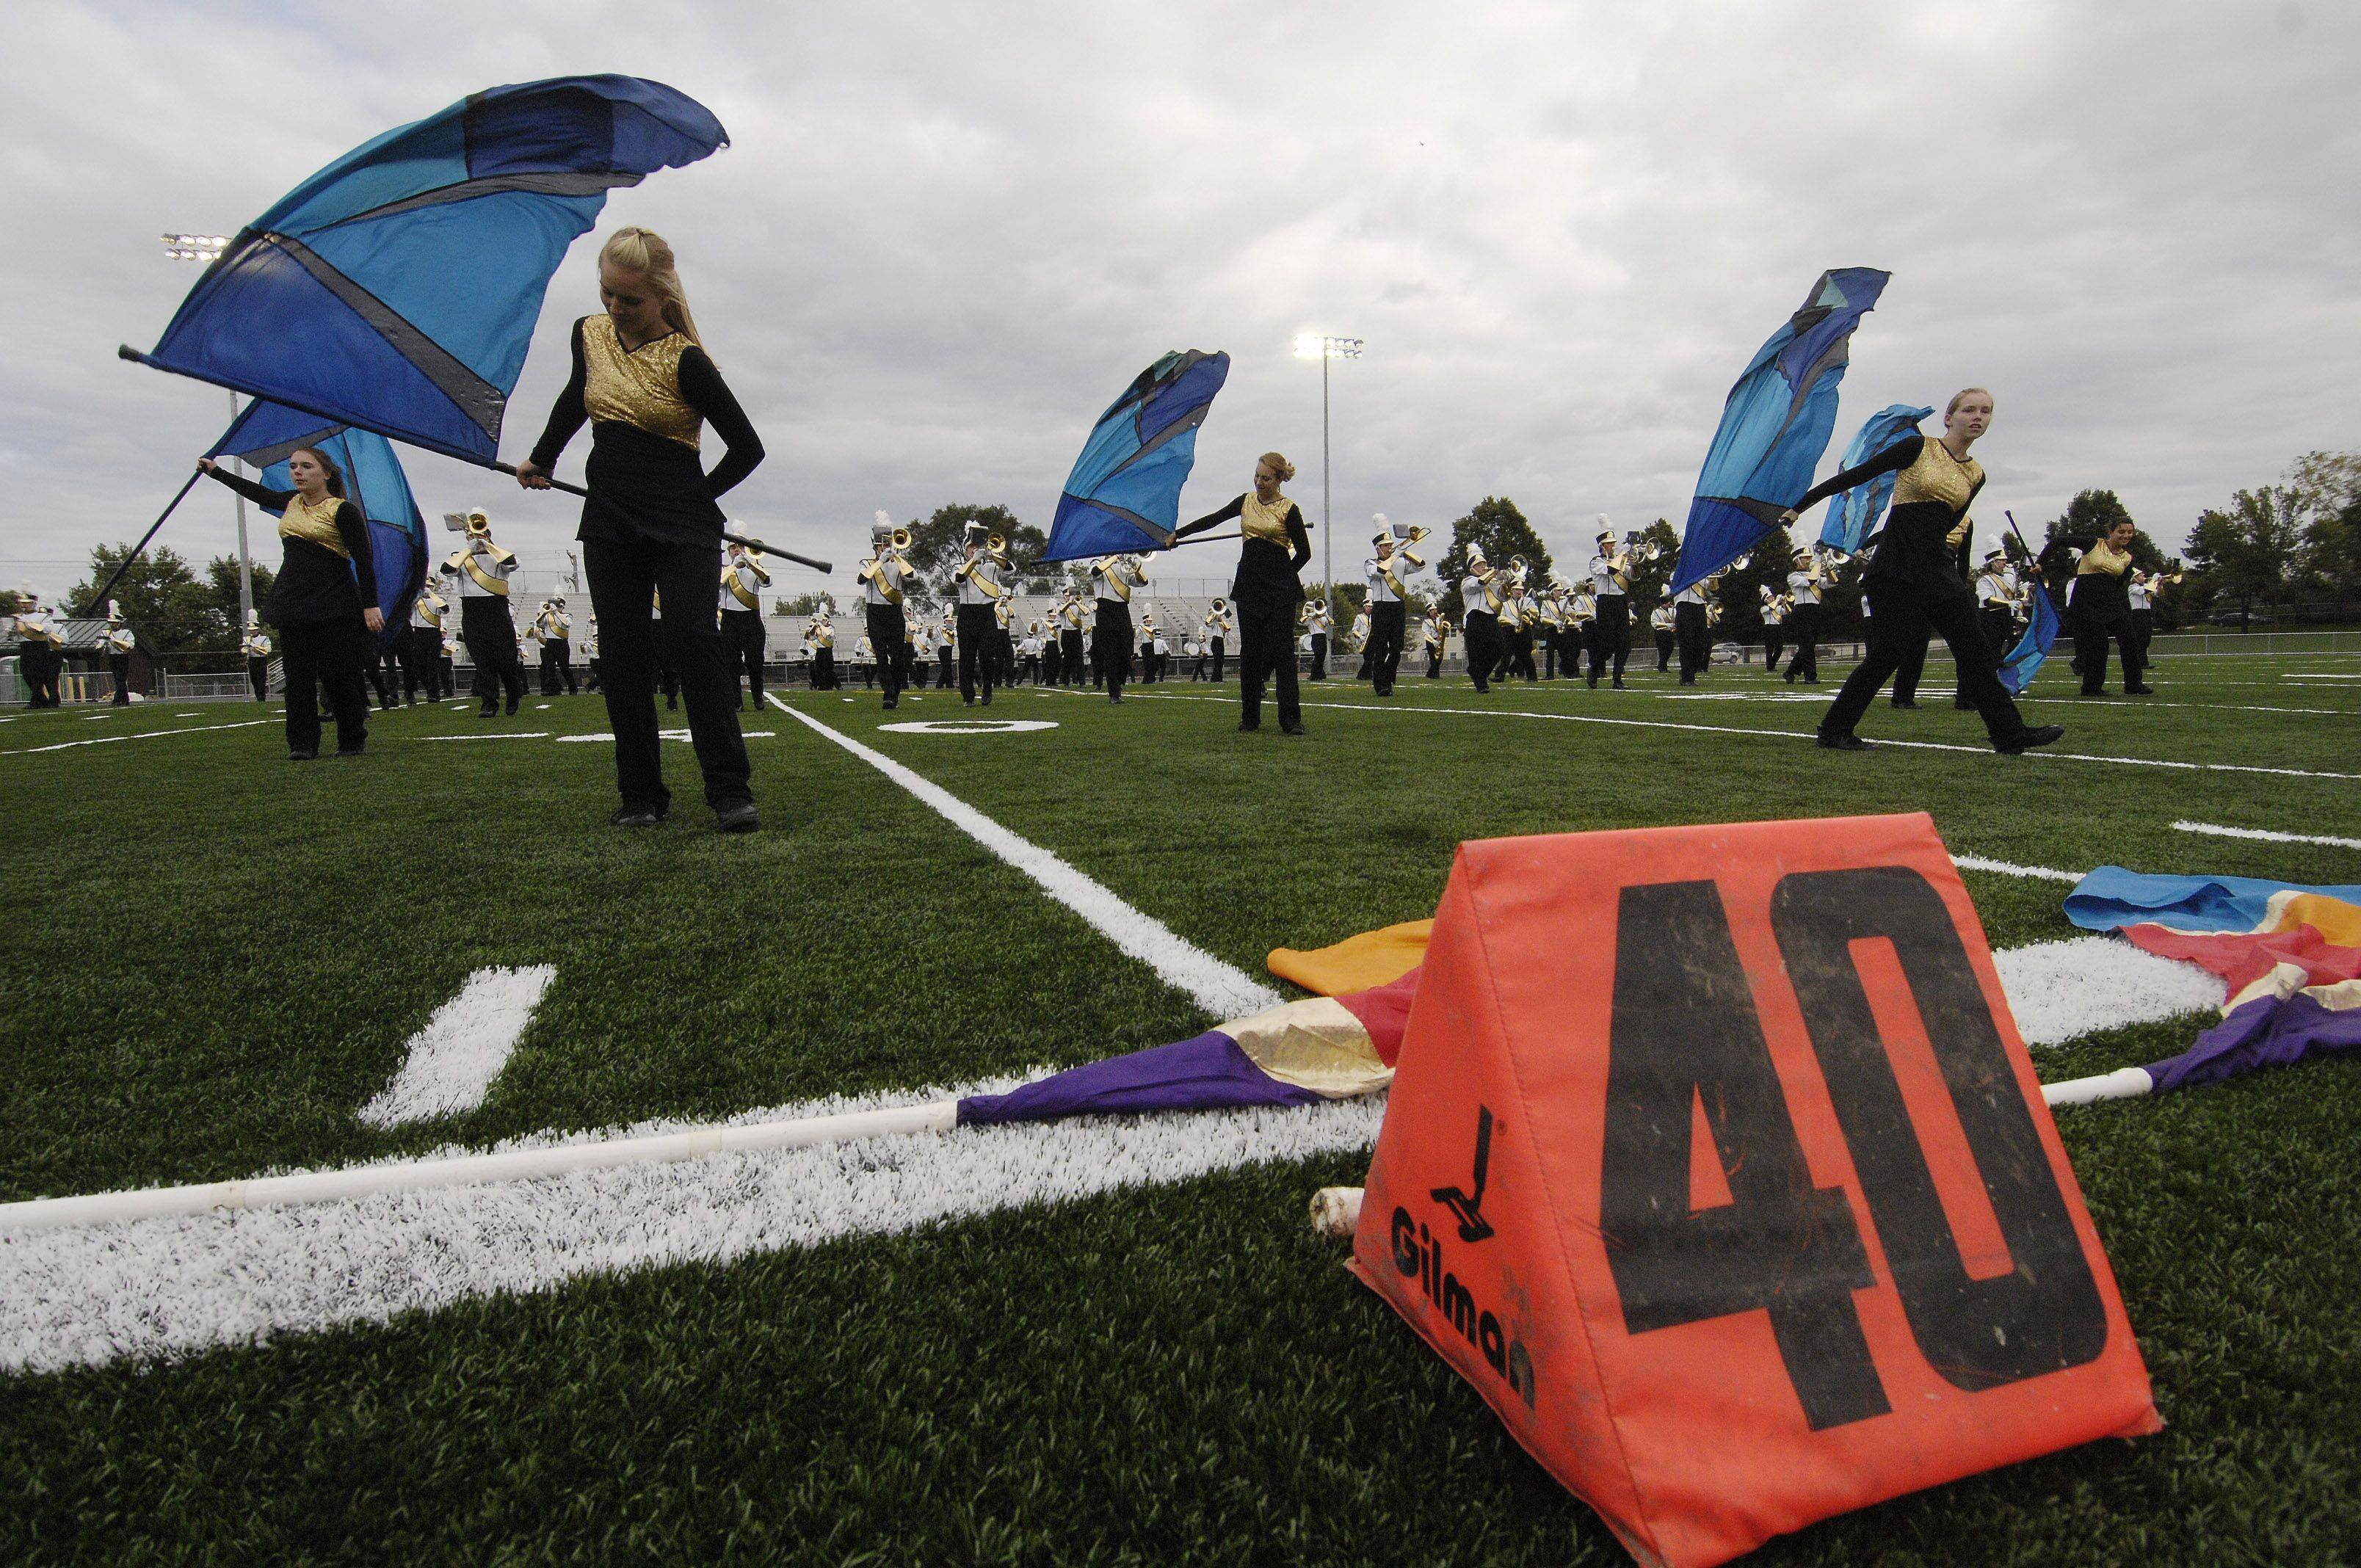 Fremd High School holds its first student activity -- a dedication ceremony featuring the marching band, cheerleaders and many other student groups -- on the new artificial turf in the school's stadium in 2008. Hersey and Wheeling high schools will join Fremd and Barrington High School later this year as a Northwest suburban high school with an artificial football field.